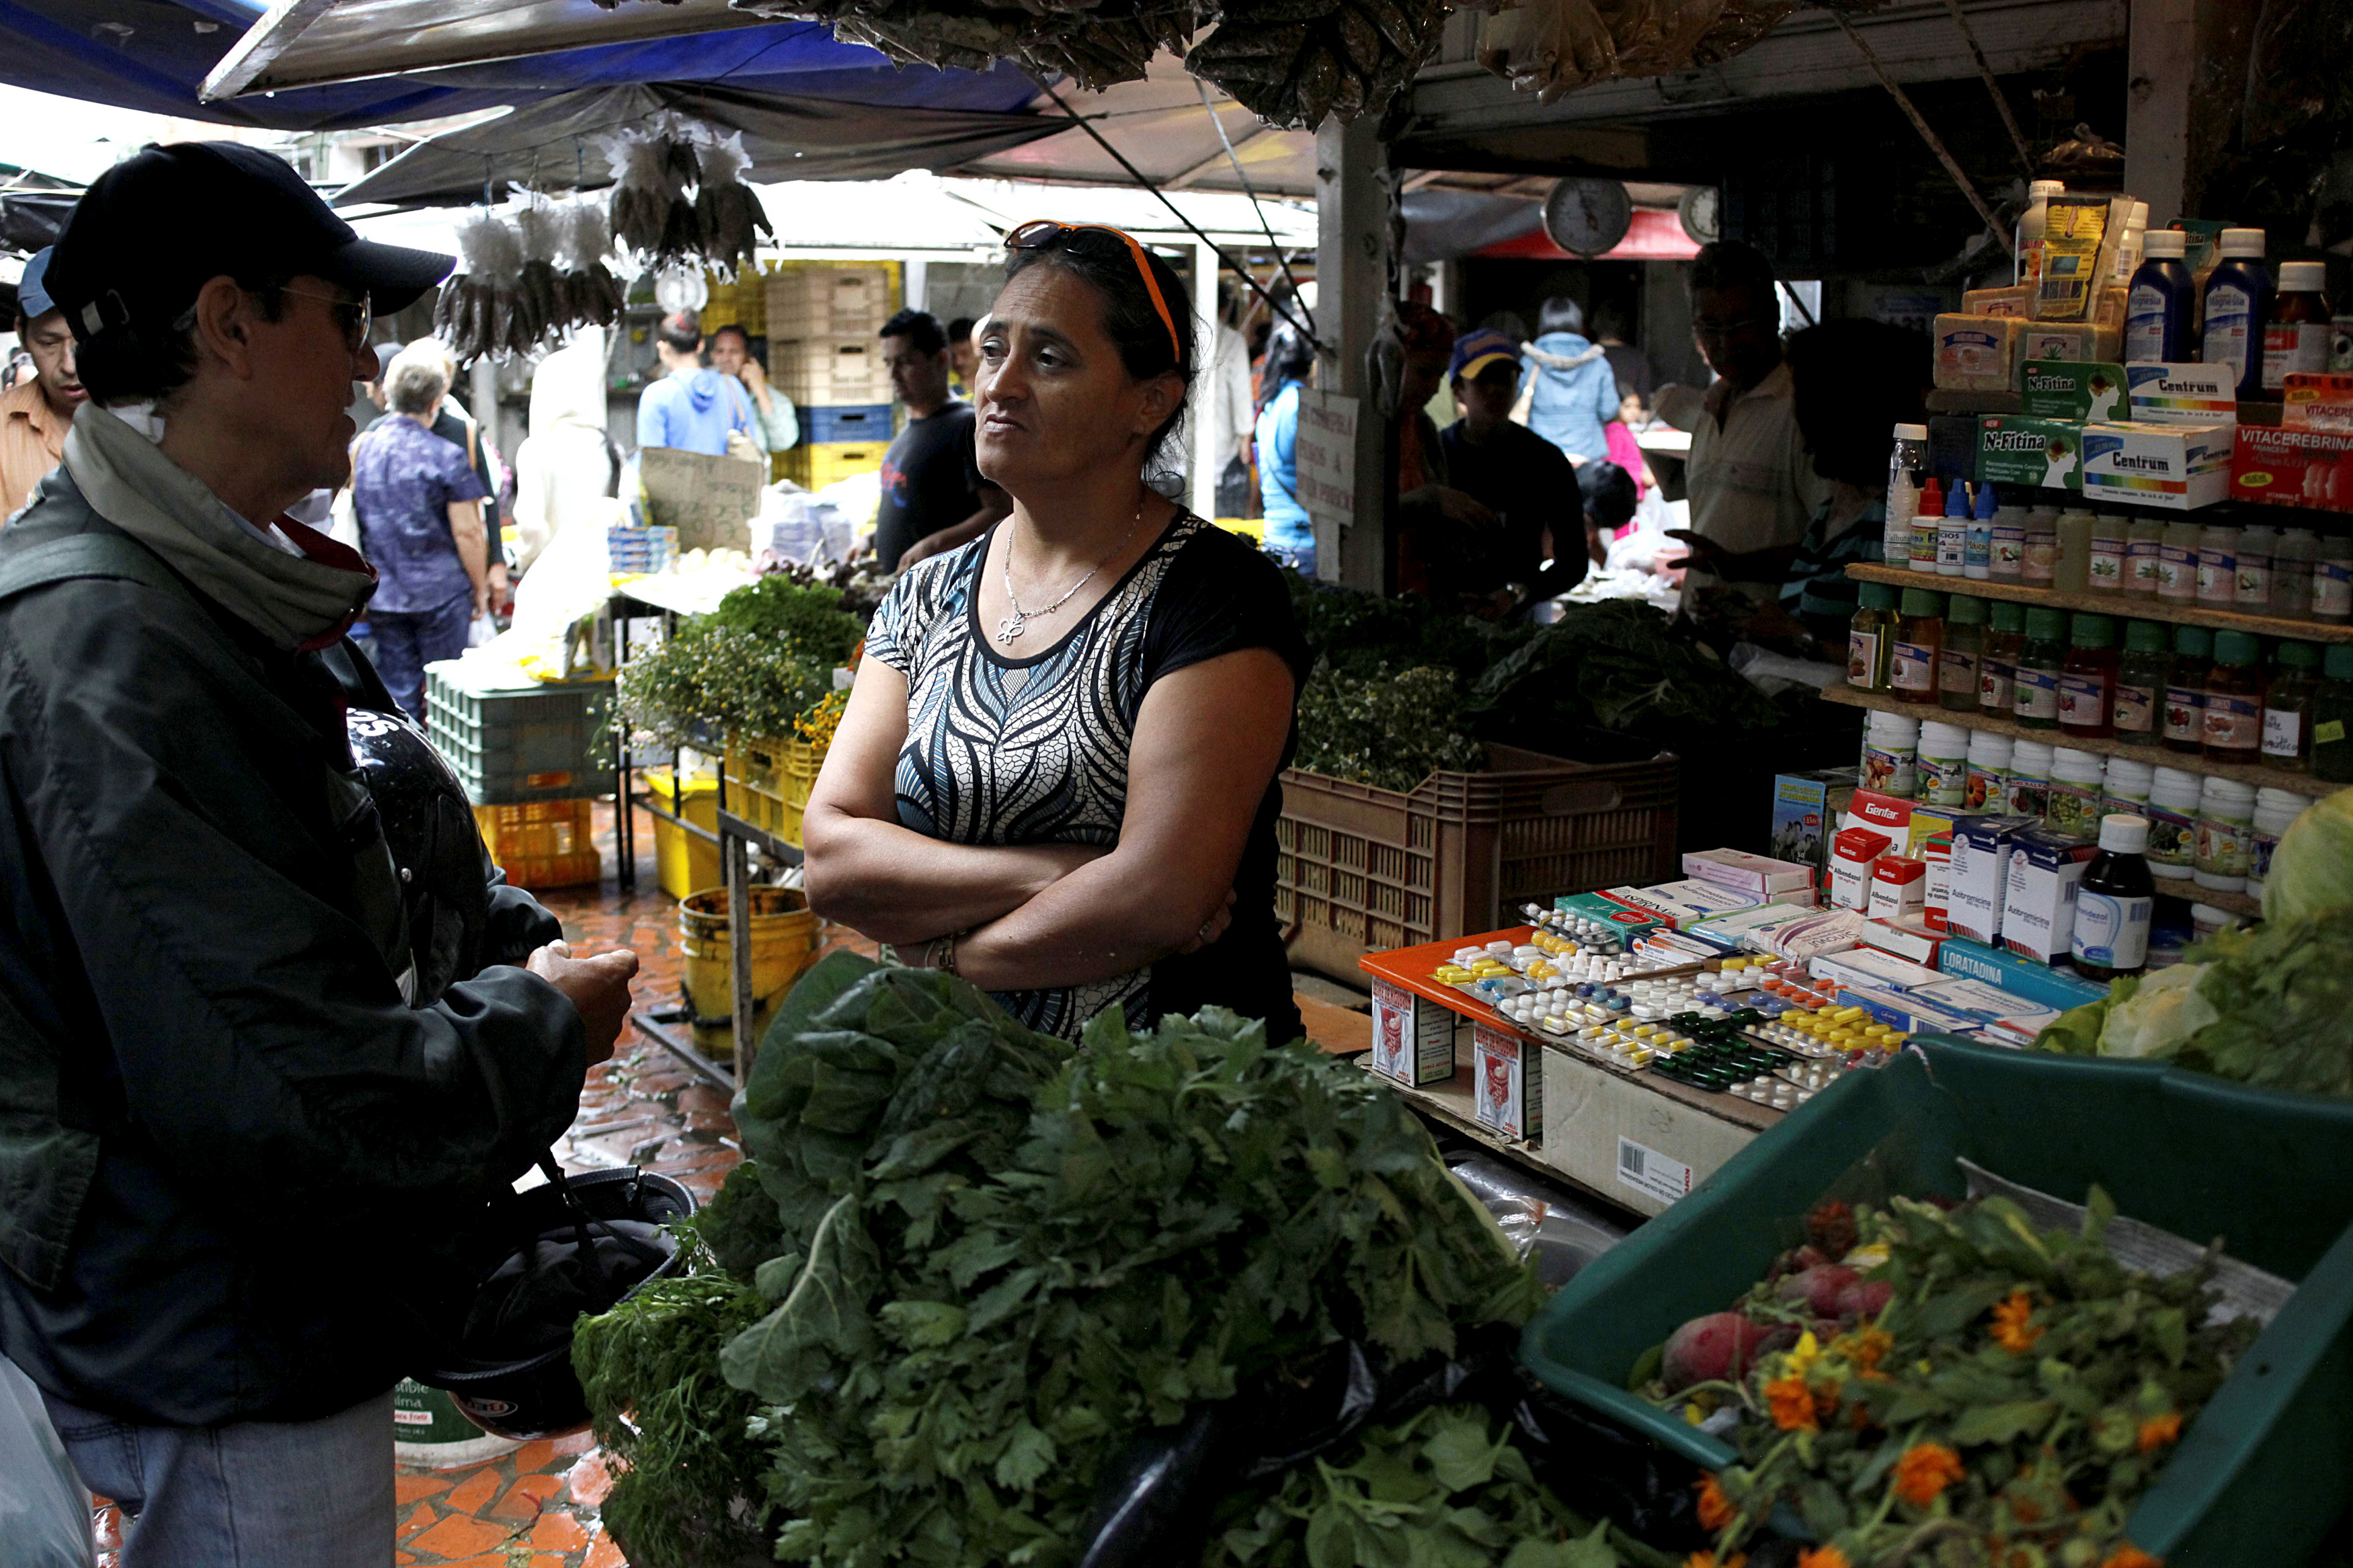 A vendor talks with a customer in her fruit and vegetables stall selling medicines at a market in Rubio, Venezuela, Dec. 5, 2017.